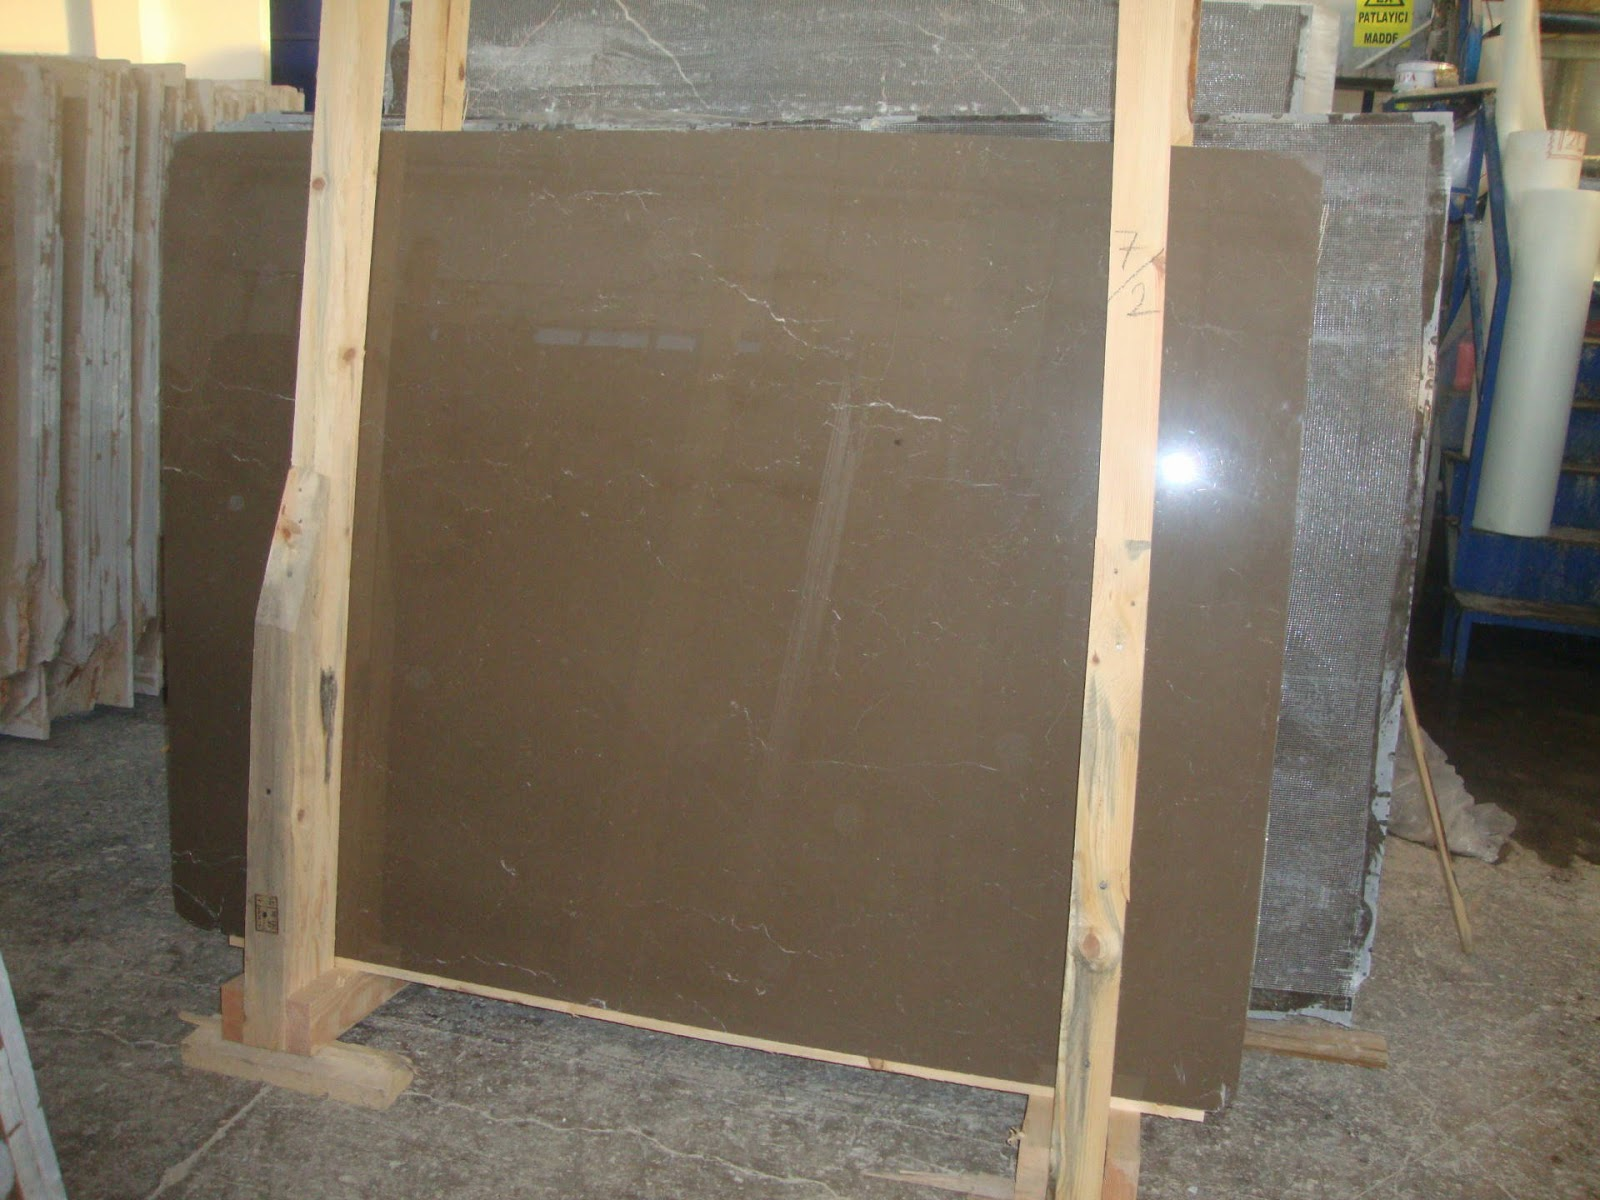 ARMANI BRONZE POLISHED MARBLE SLAB